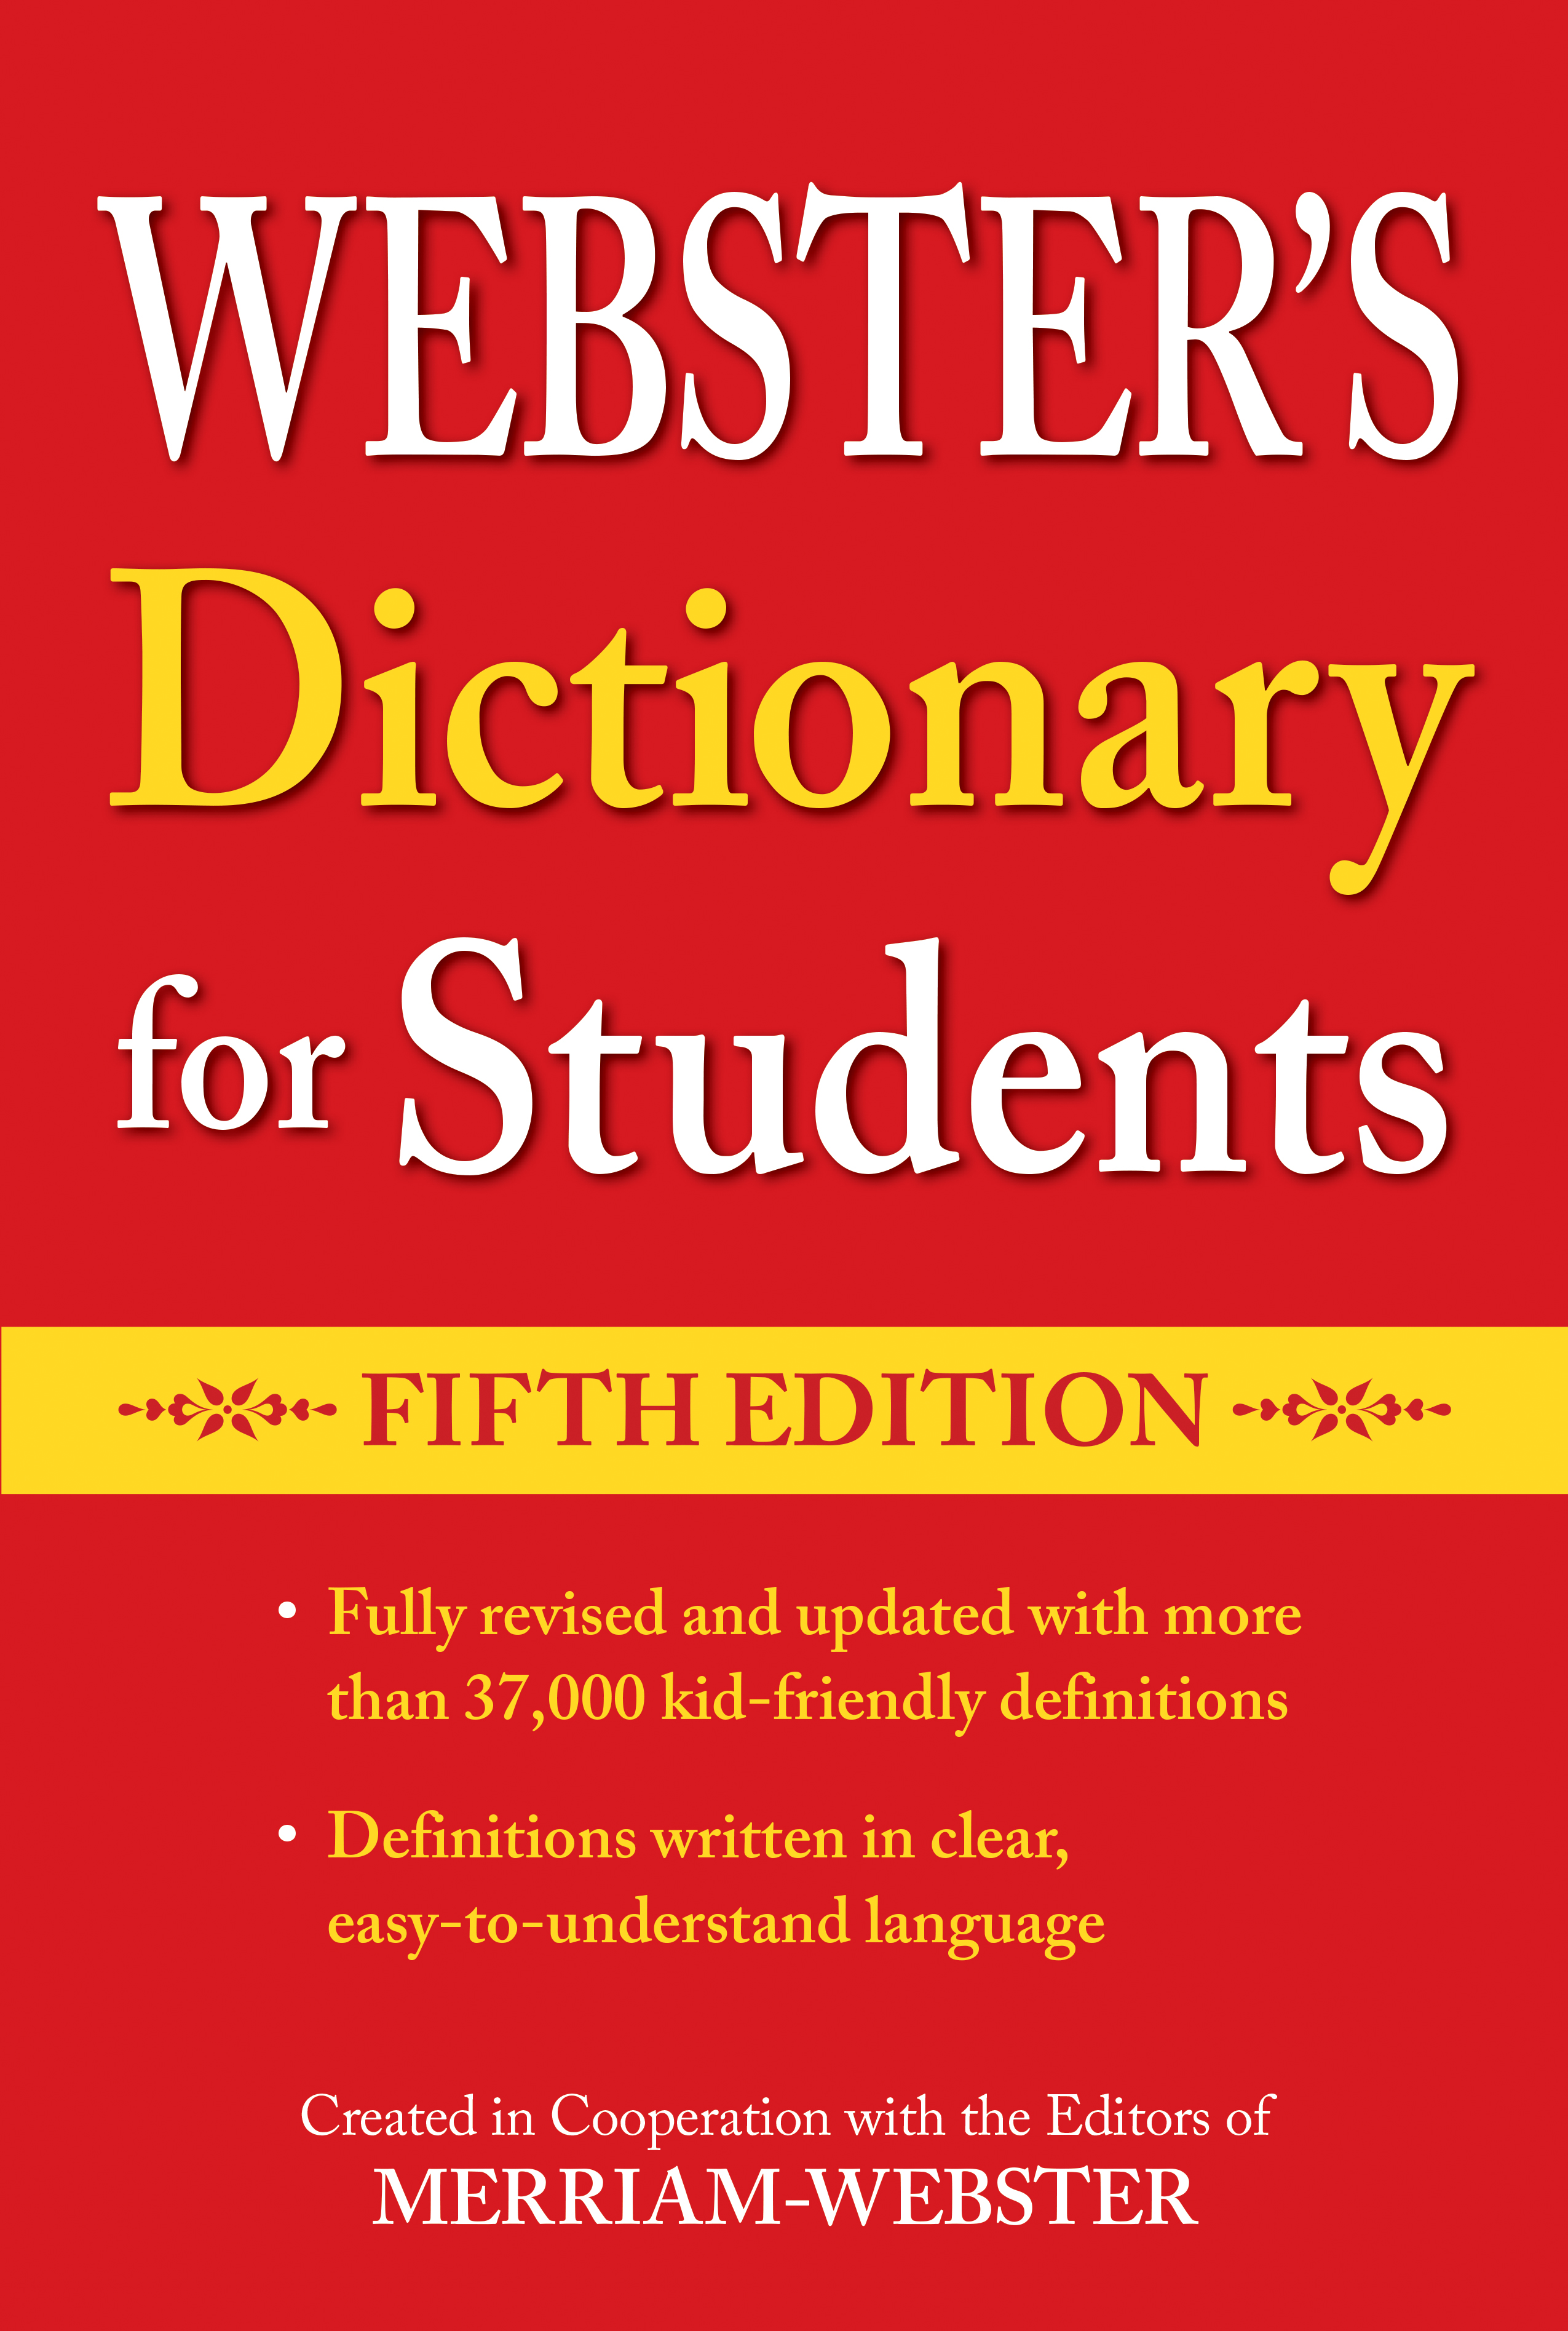 Webster's Dictionary for Students, Fifth Edition · 978-1-59695-167-9